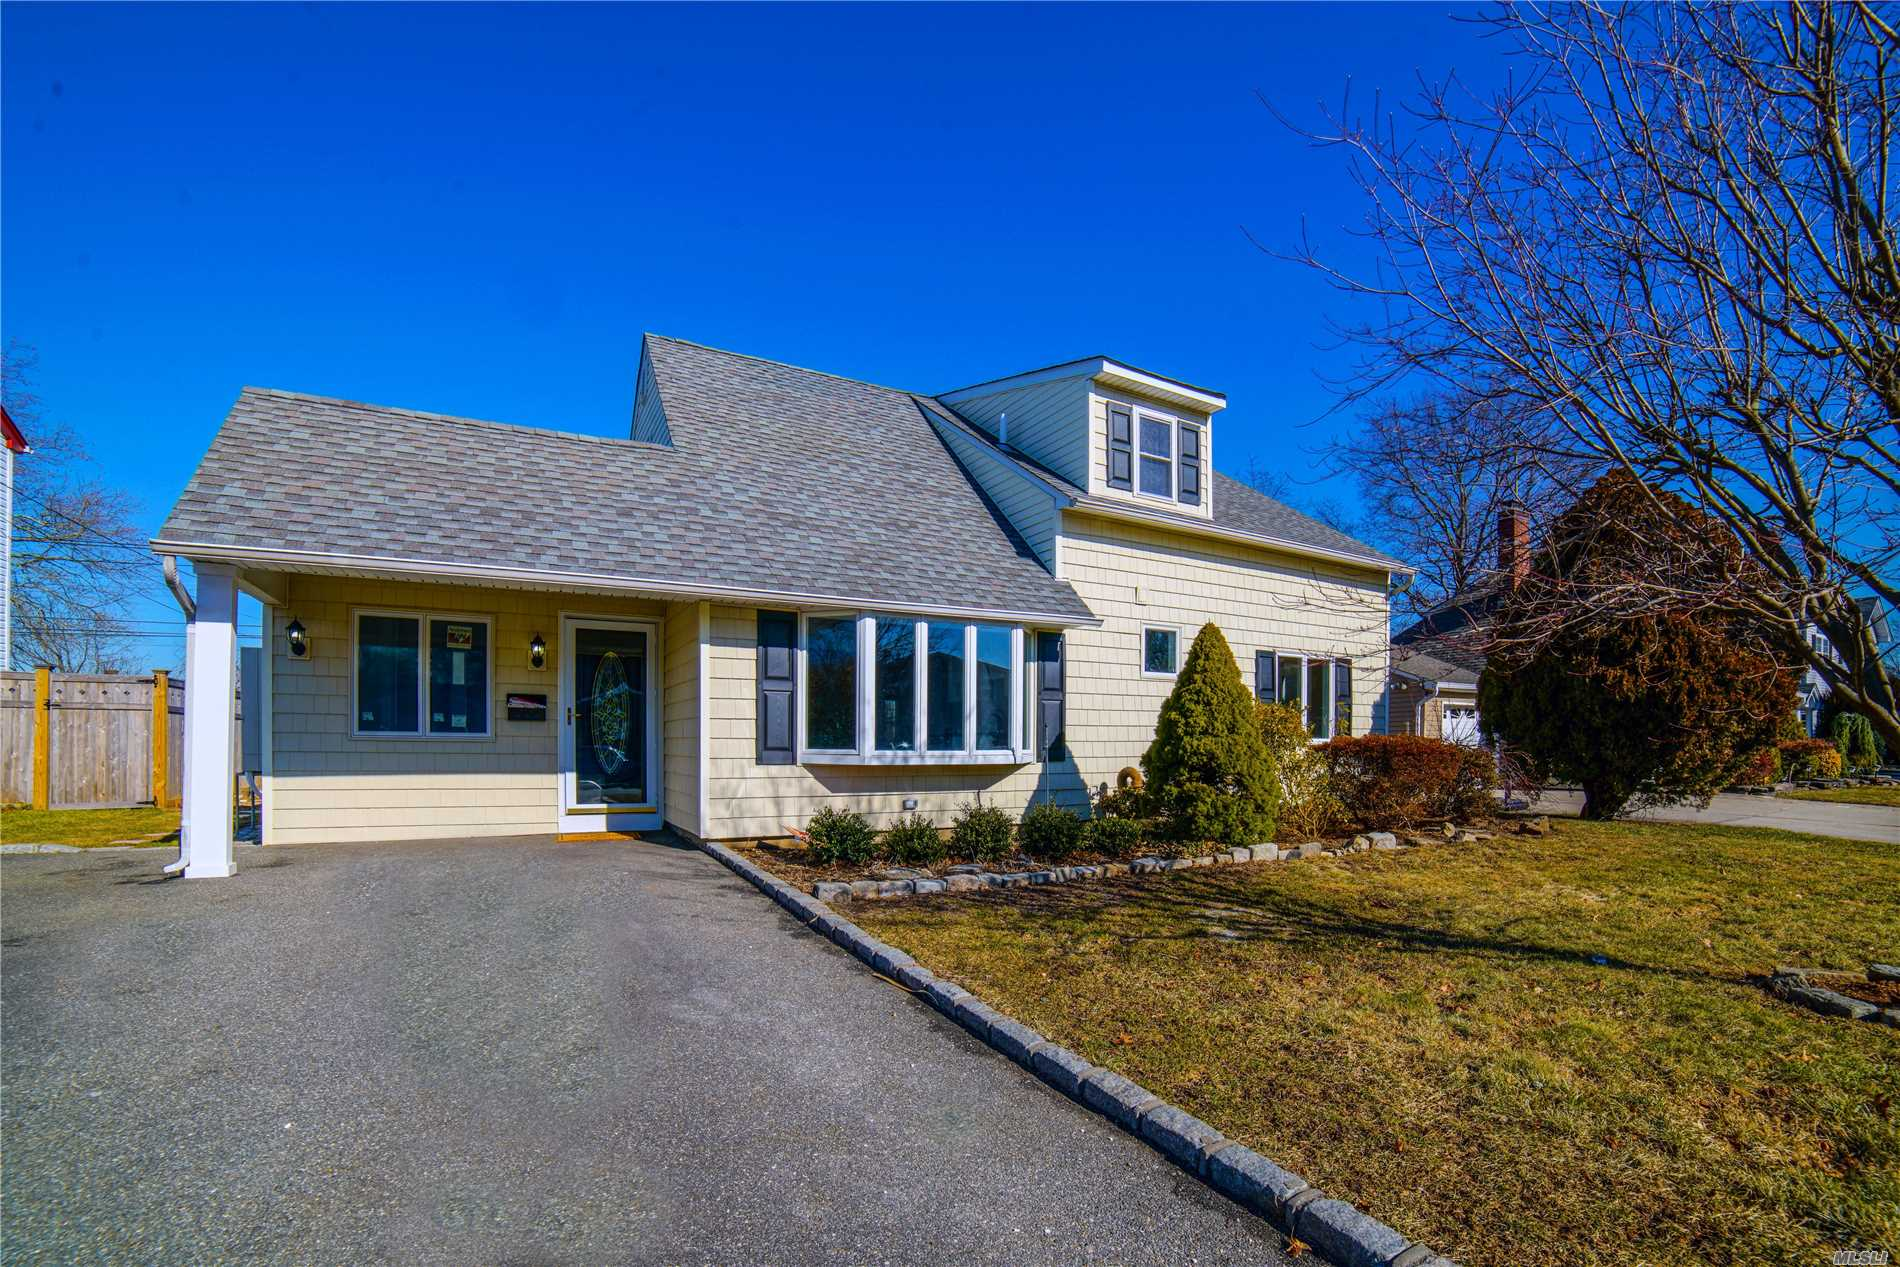 Beautiful Expanded Ranch Completely Renovated Like New 4 Bedroom, Plus Office, New Kitchen, 2 New Bathrooms, Large Open Floor Plan, Hardwood Floors, New Electrical 200 Amp Service, All New Plumbing, New Hvac. Large Oversize Backyard. New Patio, Cable Ready, Shed W/Heat, In-Ground Sprinklers - New State Of The Art Heating System. 7 Airheads. 3 Base Boards.